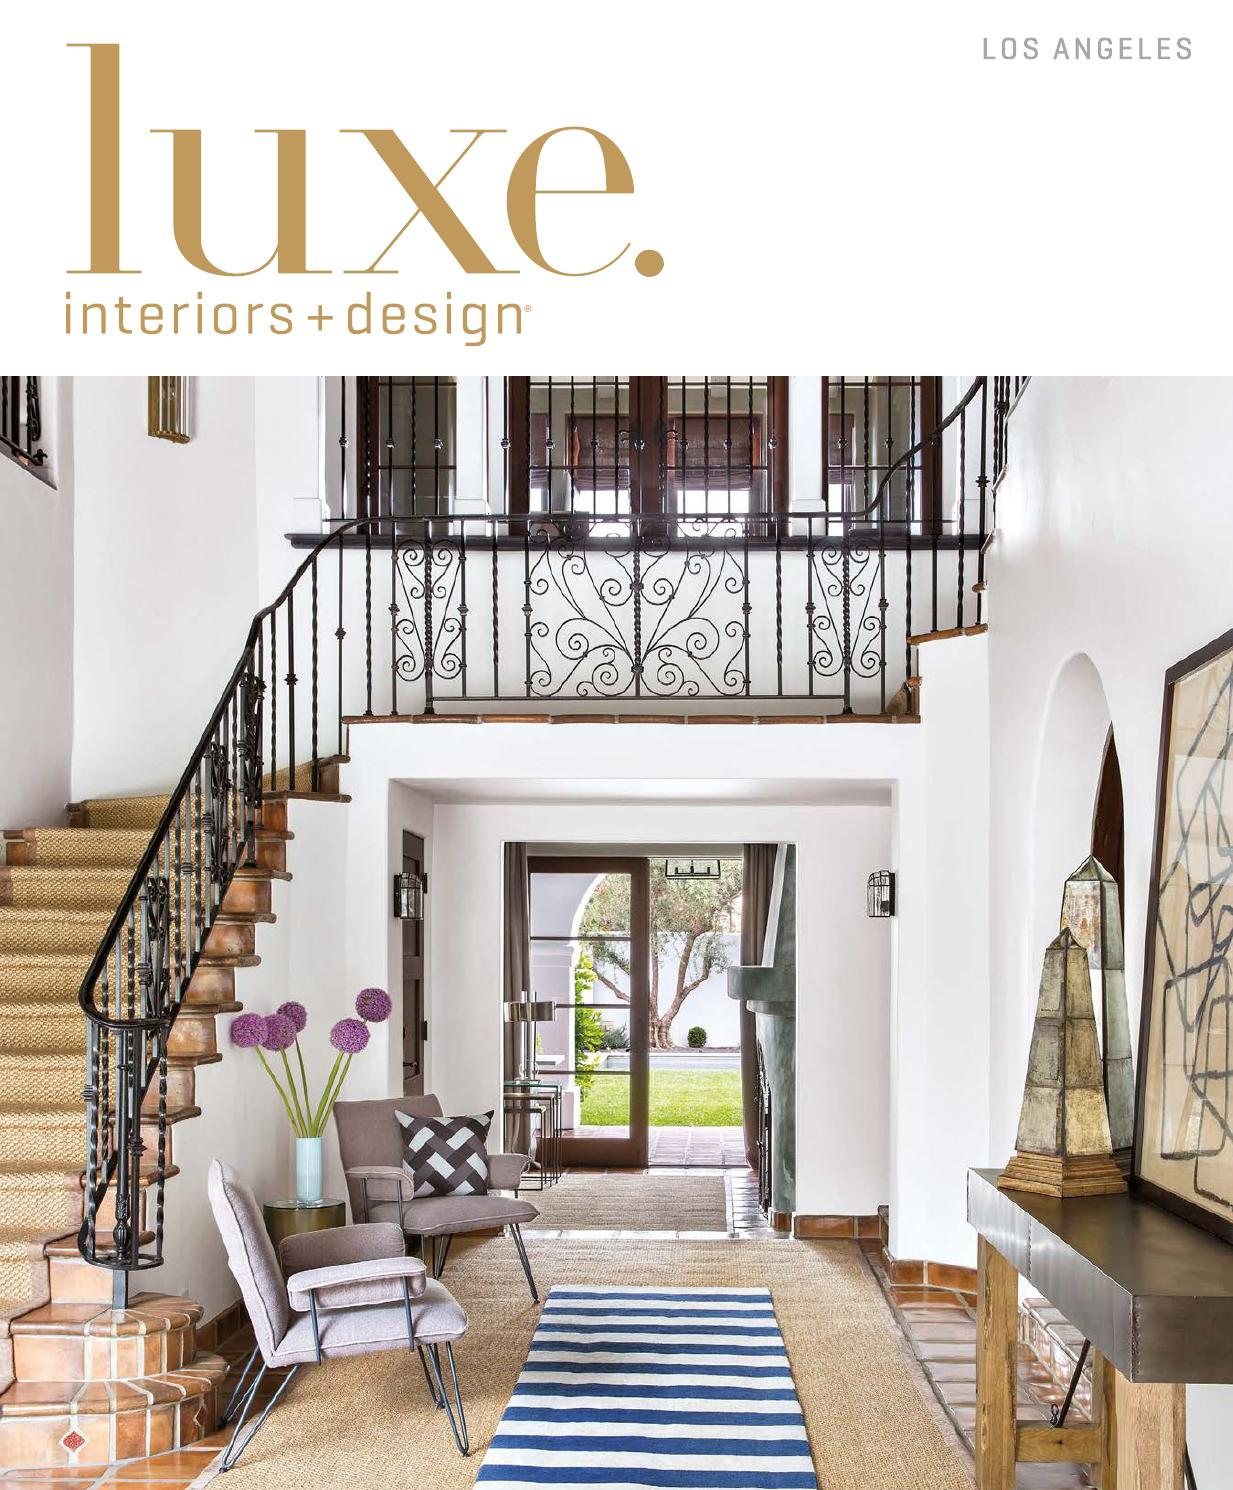 luxe magazine september 2015 los angeles by sandow media llc issuu. Black Bedroom Furniture Sets. Home Design Ideas